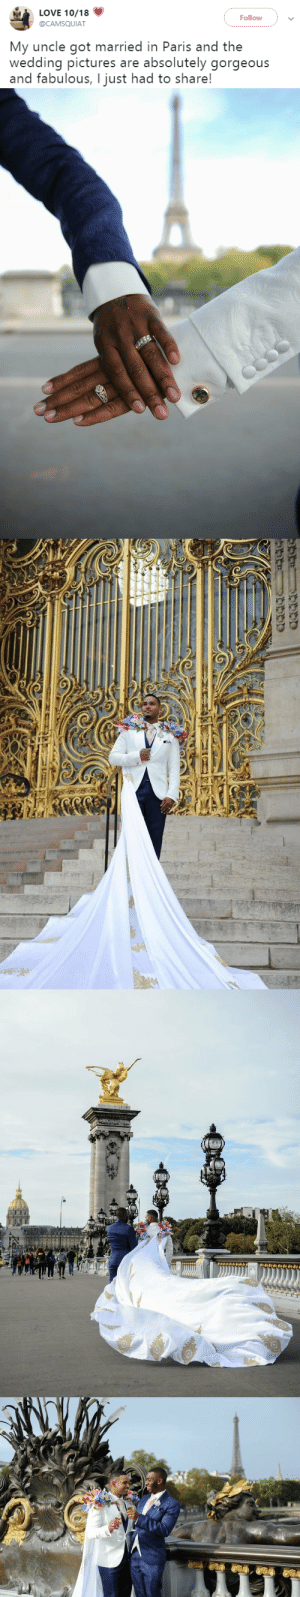 tooiconic: niggazinmoscow: Perfectly gay❤️  That is the most amazing wedding tux alteration I have ever seen.    Oh my god that's so cute.Me at the tailor: gimme wedding capeTailor: what Me: W E D D I N G  C A P E: LOVE 10/18  Follow  @CAMSQUIAT  My uncle got married in Paris and the  wedding pictures are absolutely gorgeous  and fabulous, I just had to share! tooiconic: niggazinmoscow: Perfectly gay❤️  That is the most amazing wedding tux alteration I have ever seen.    Oh my god that's so cute.Me at the tailor: gimme wedding capeTailor: what Me: W E D D I N G  C A P E